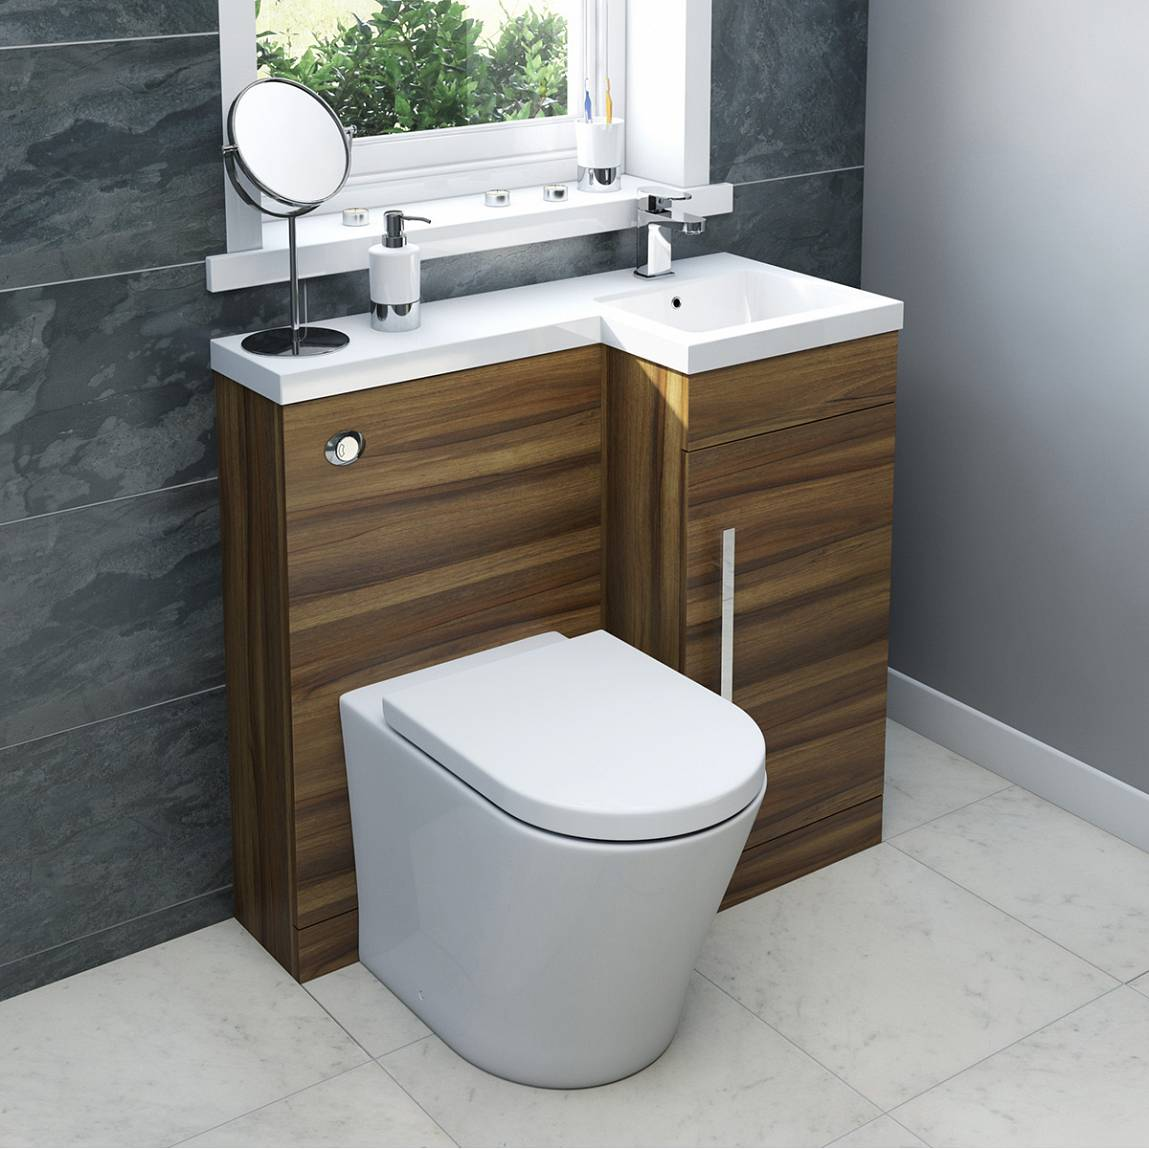 Small bathroom style it your way with myspace furniture for Toilet and bath design small space